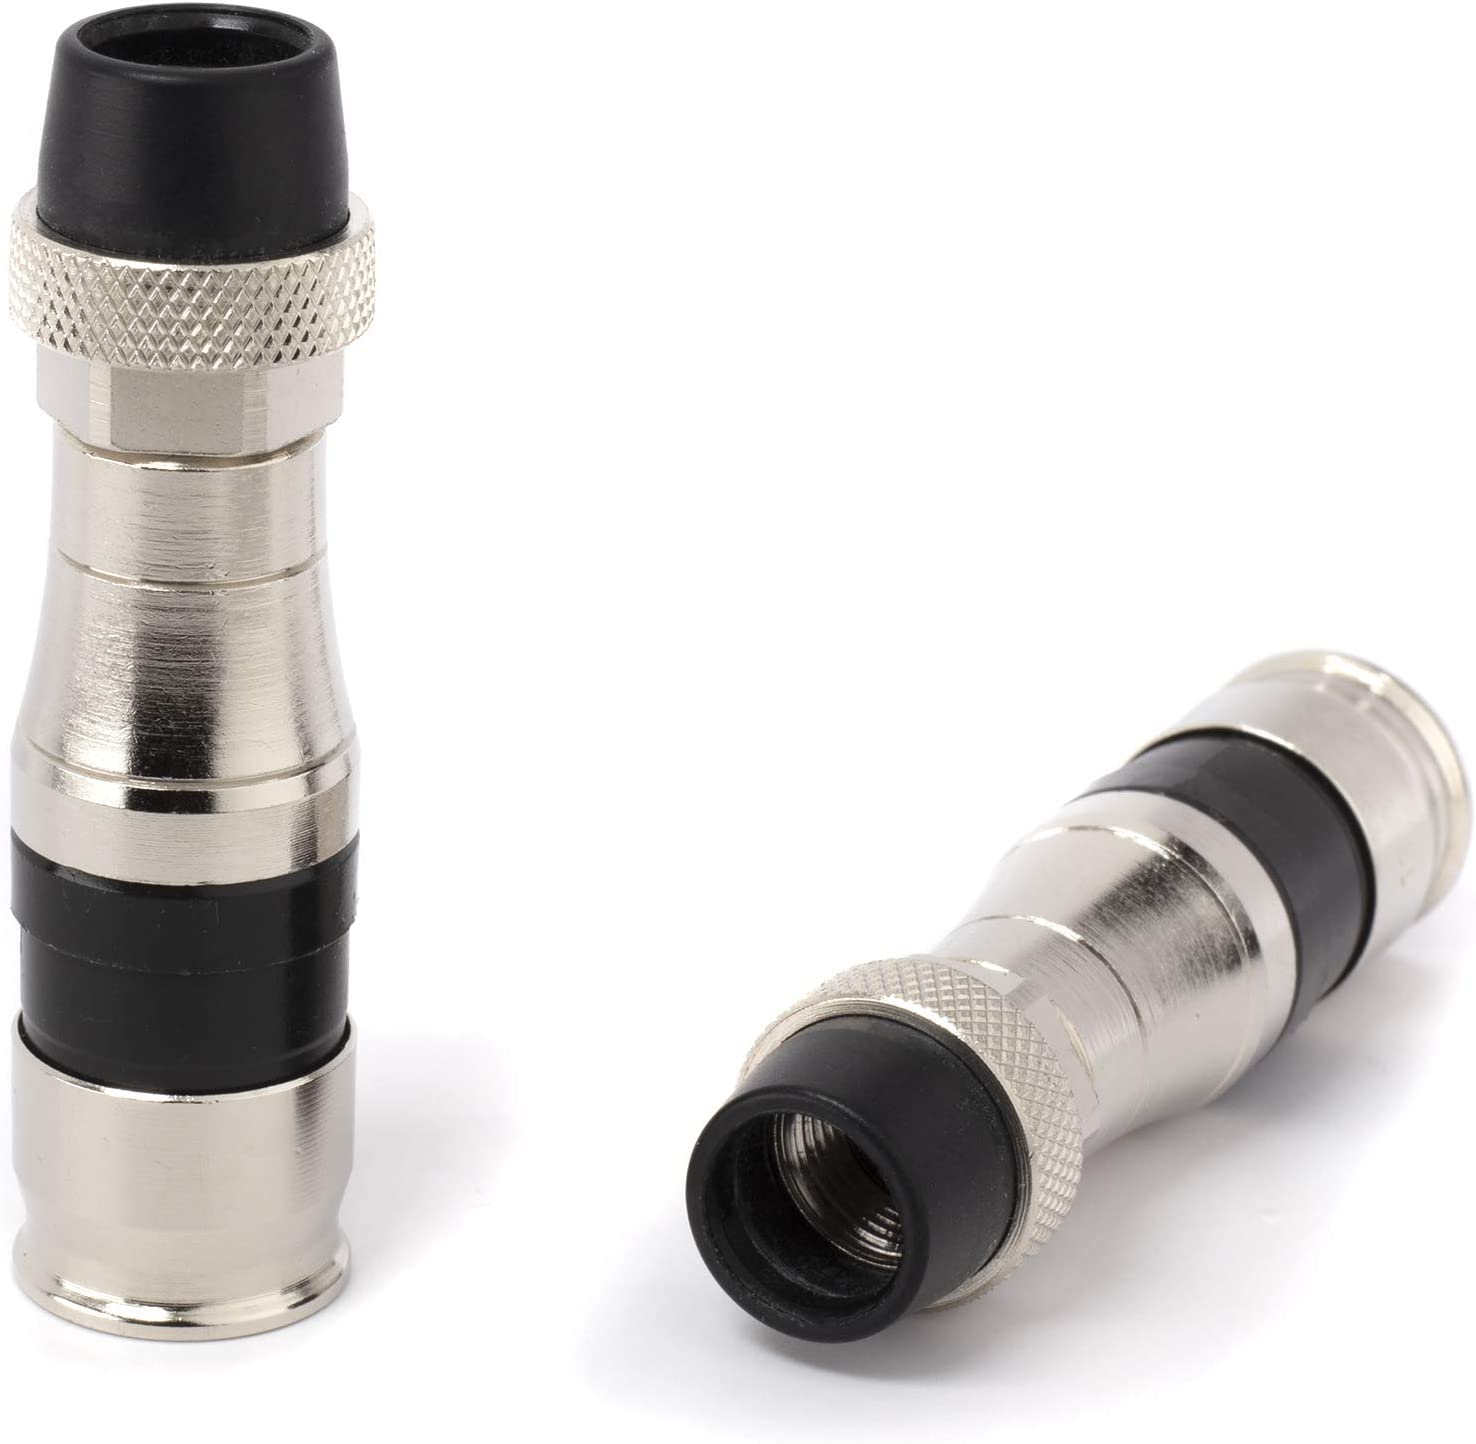 Coaxial Cable Compression Fitting Connector - Save money Coax Cabl 5% OFF for RG11